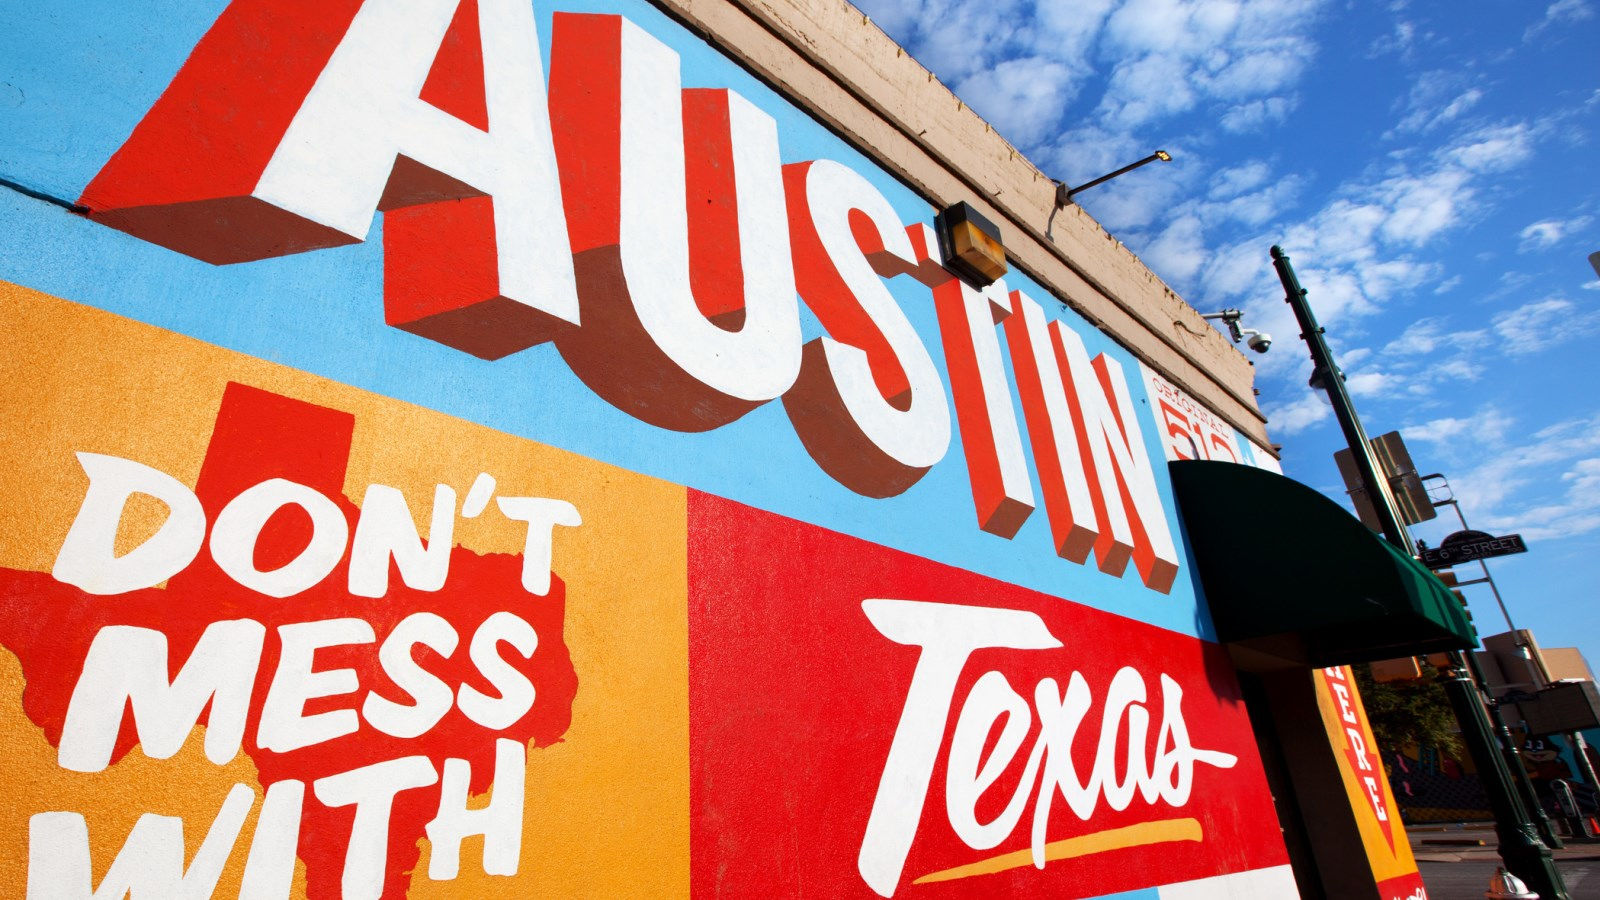 Hotels Near 6th Street Austin - Mural